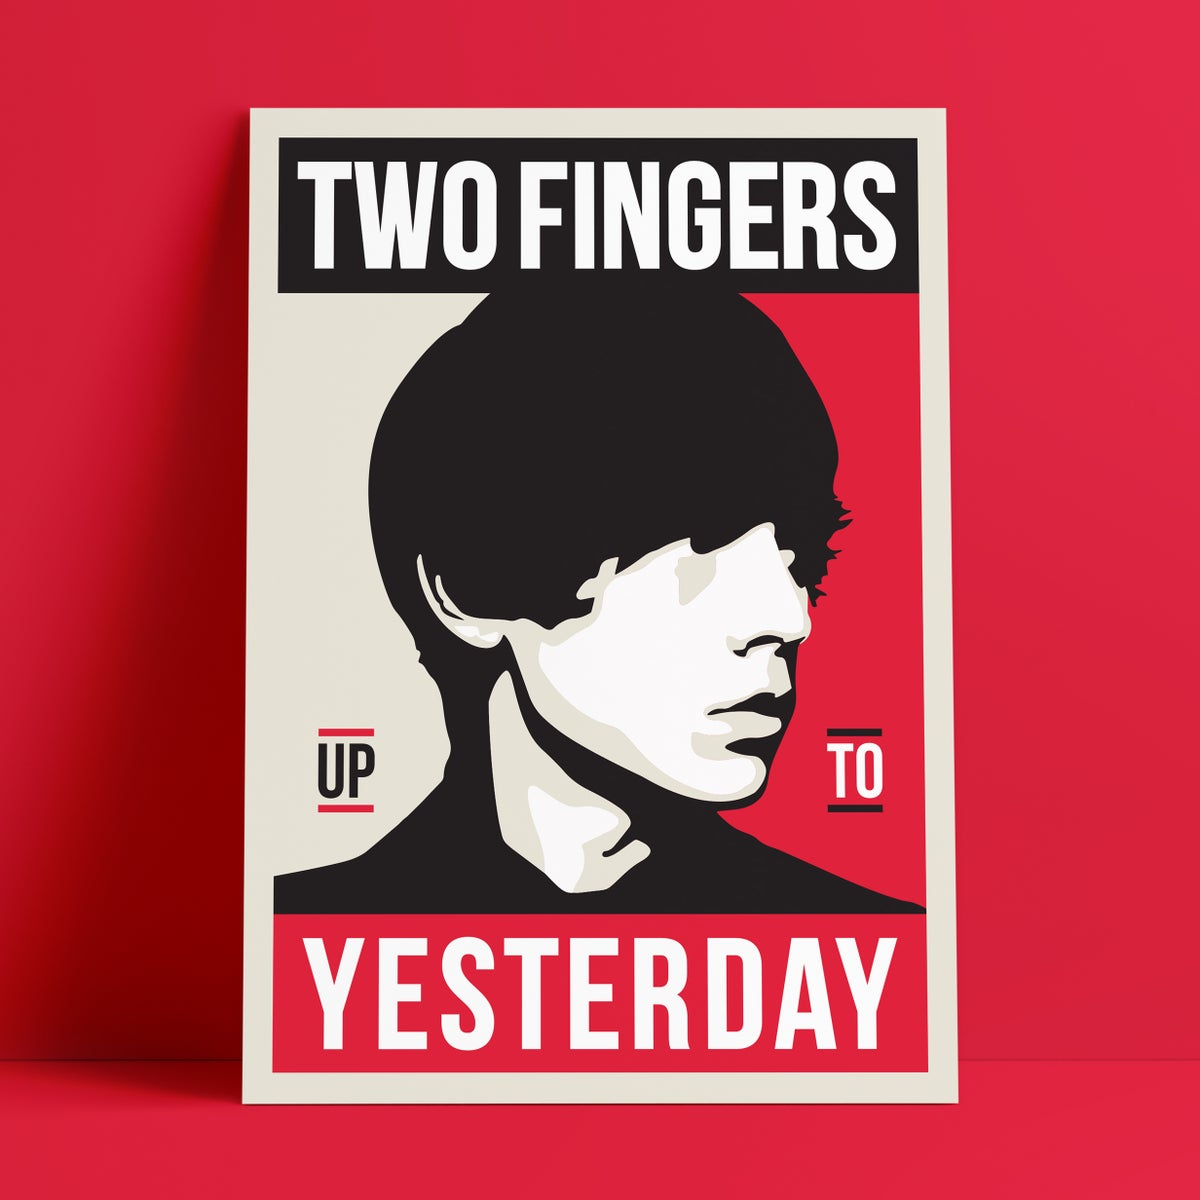 Image of Two Fingers Poster